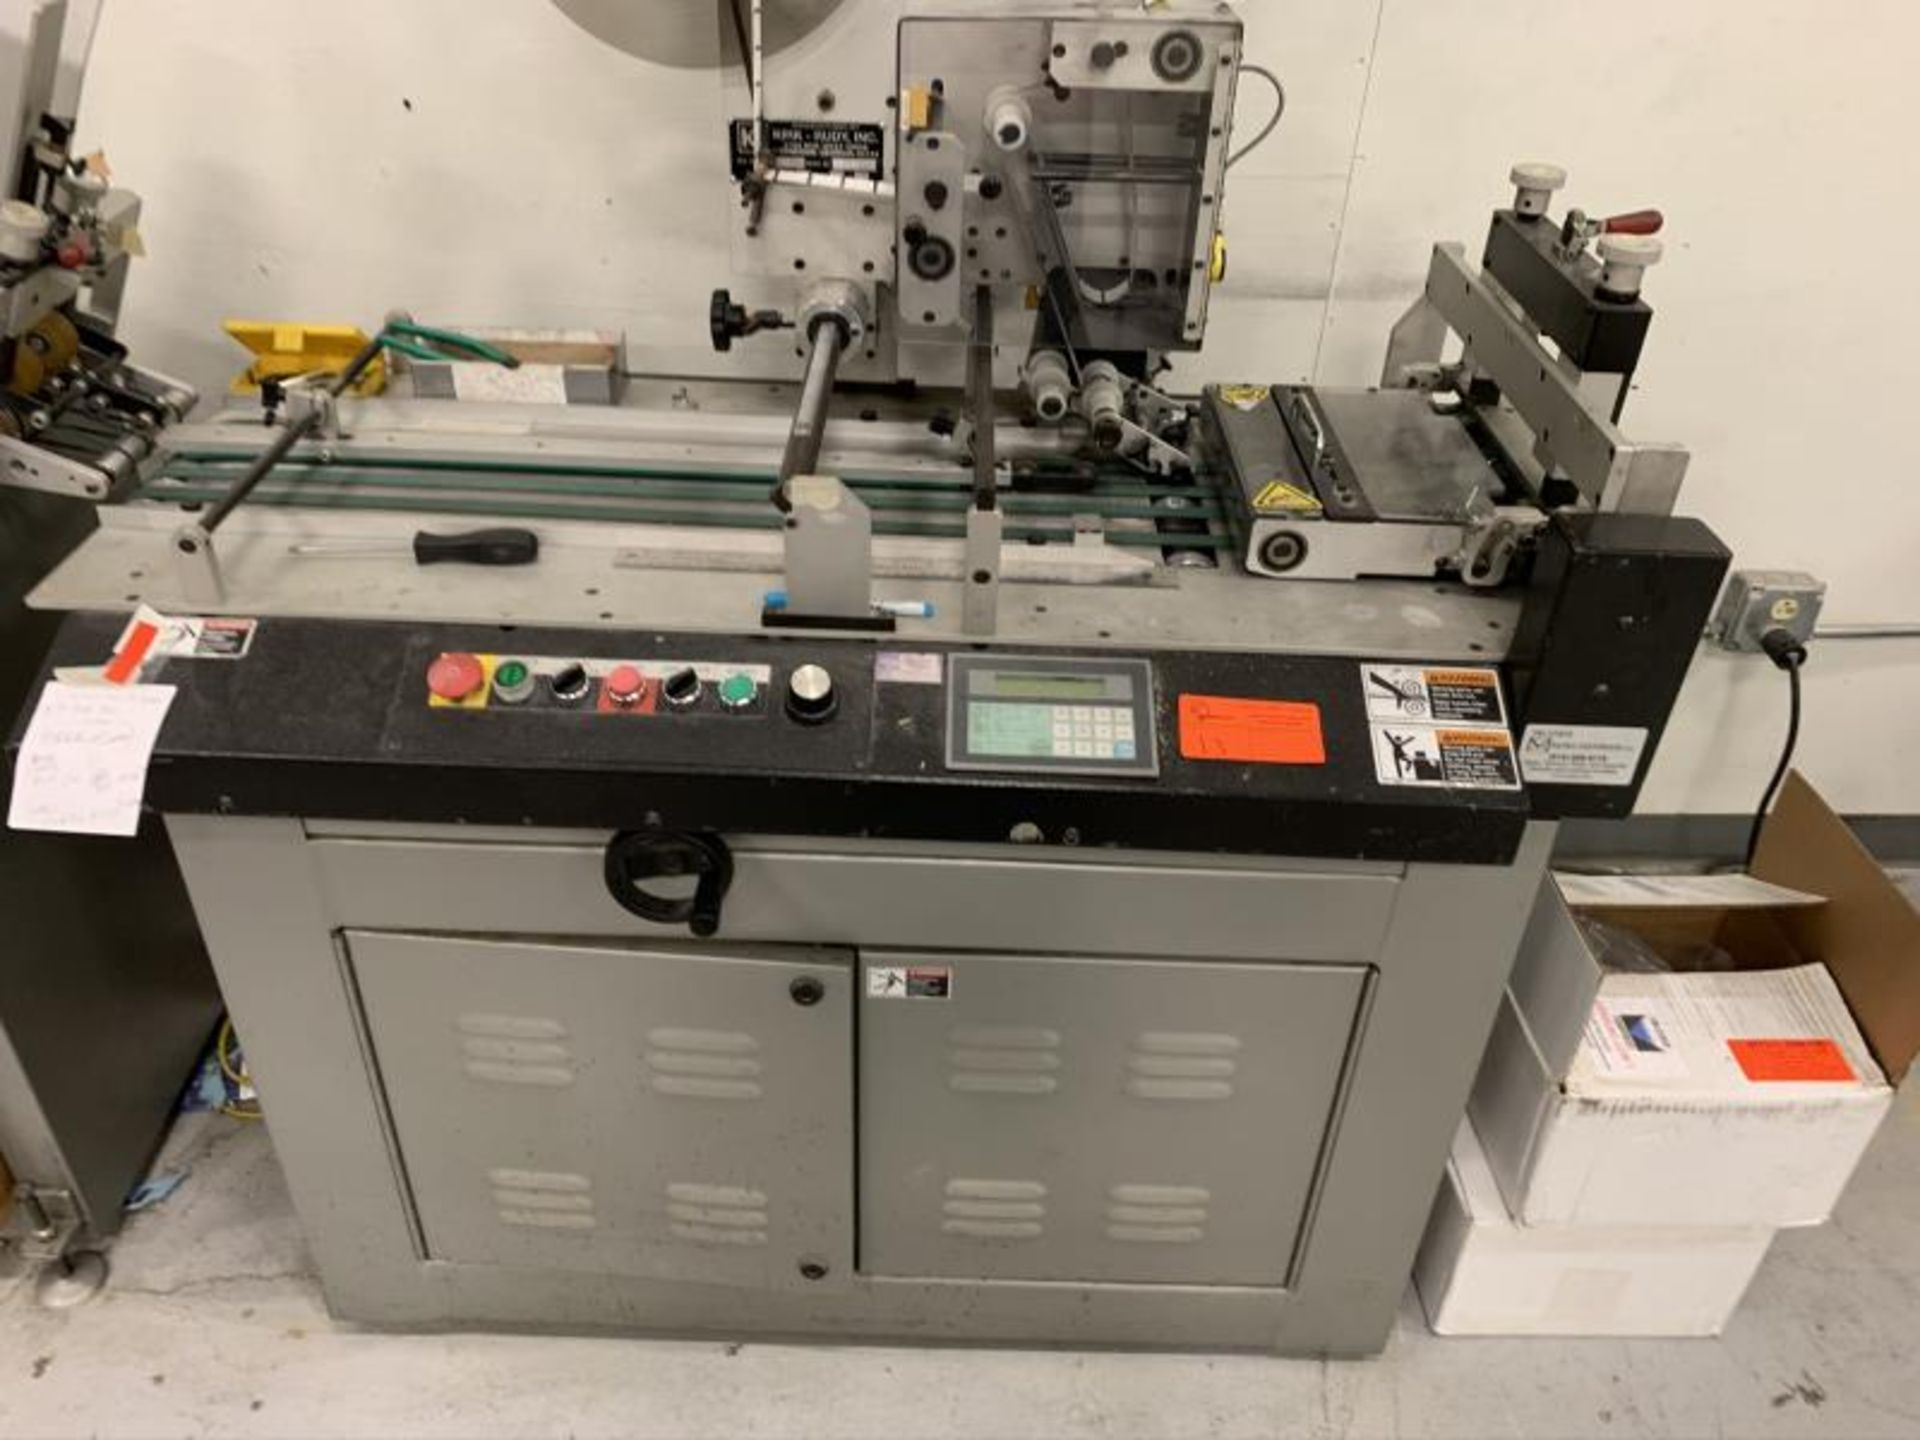 Lot 13 - Wafer Sealing System by Kirk Rudy, Model: 585-CS, SN: 602525 w/ Feeder & Delivery Unit, Model: 314-